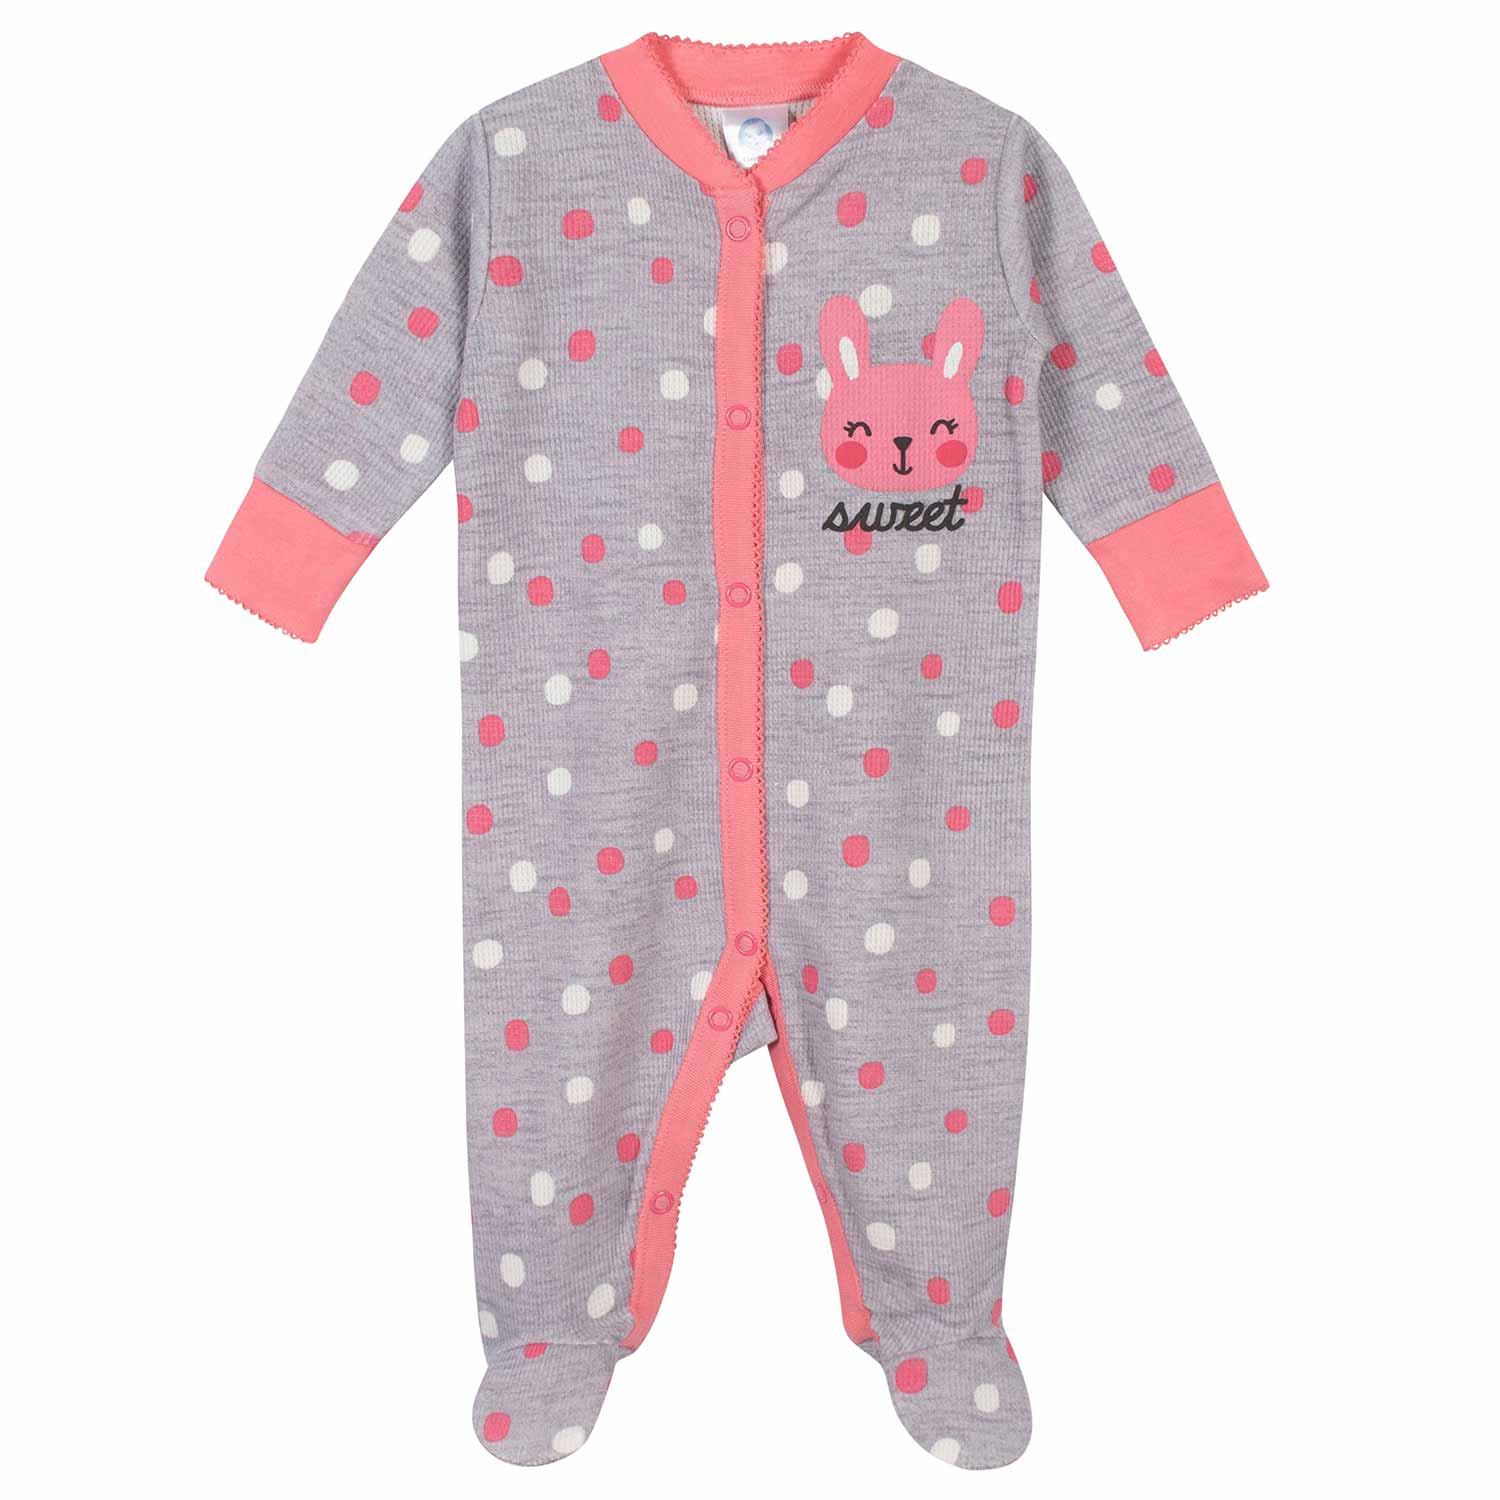 2-Pack Baby Girls Bunny Thermal Sleep N' Plays